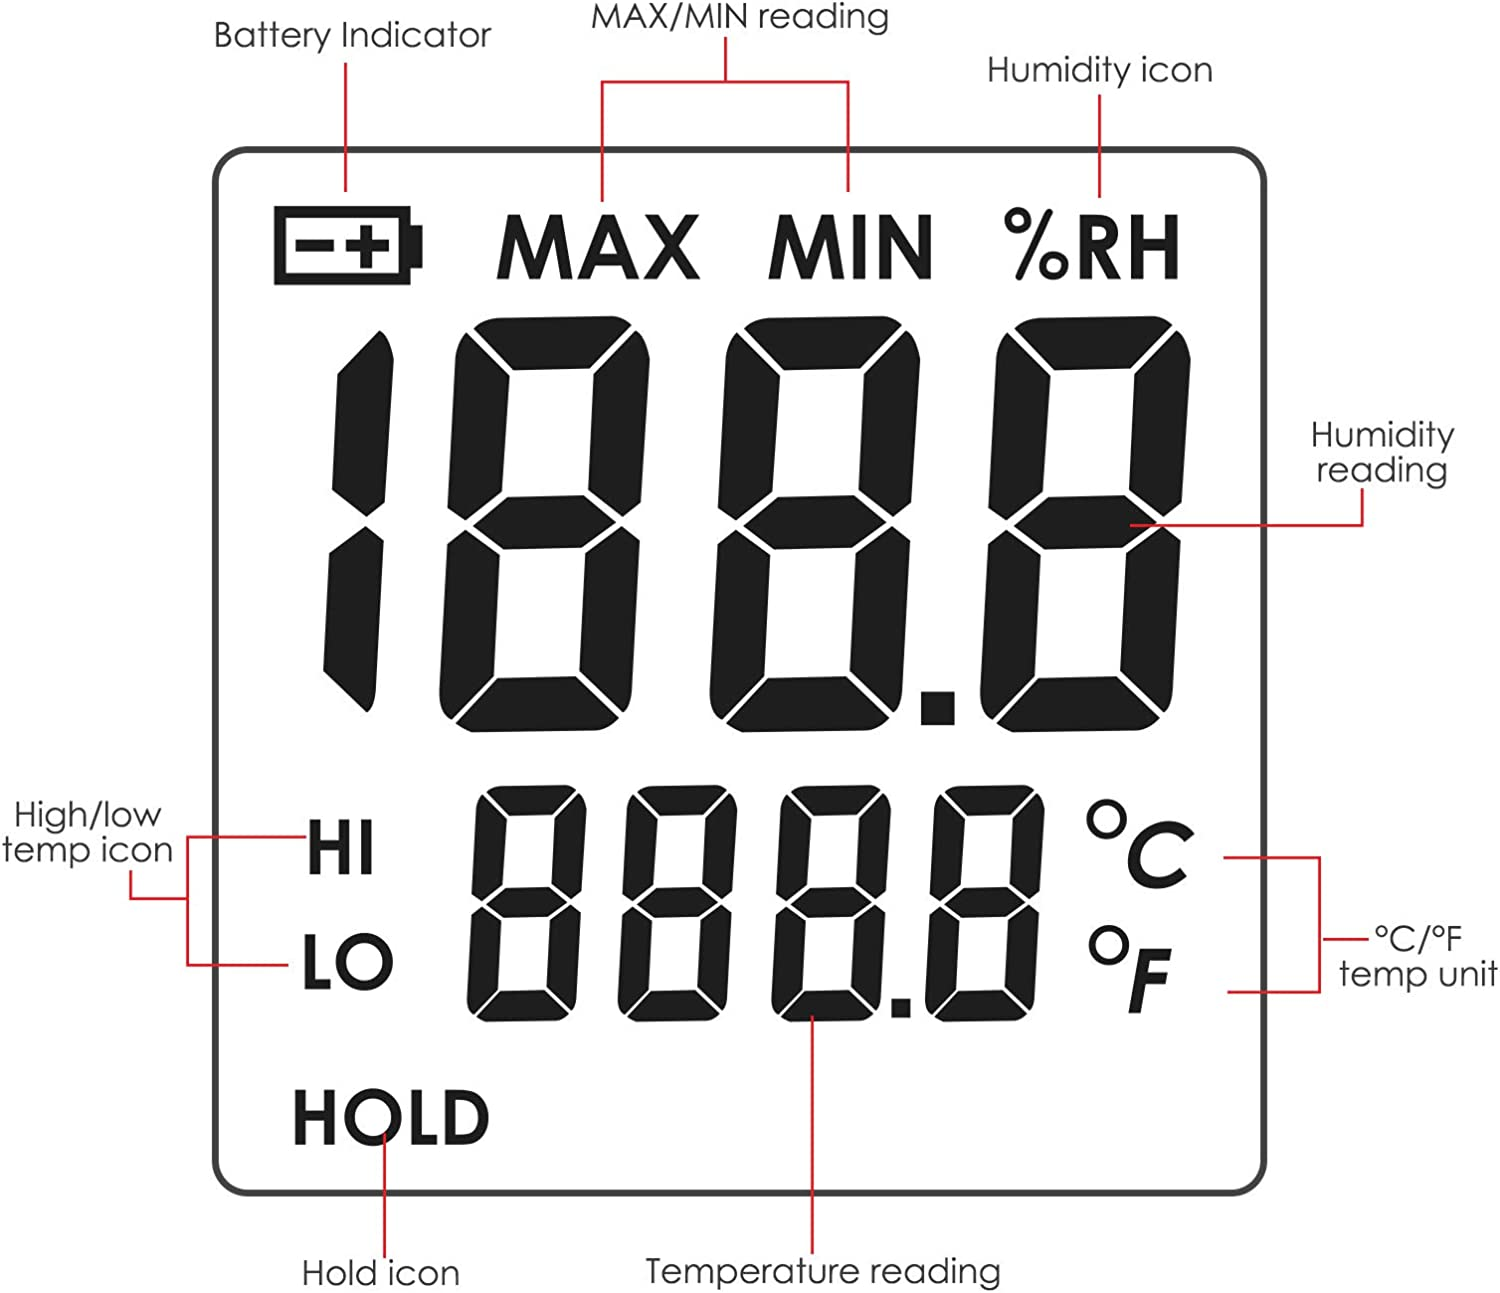 Handheld Digital Humidity & Temperature Meter 0~100% RH/ -30~70°C (-22~158°F) LCD Display Backlight Moisture Thermo Hygrometer Thermometer Small Tester Gauge for Home Kitchen Indoor Outdoor 61mKSY2C-YL